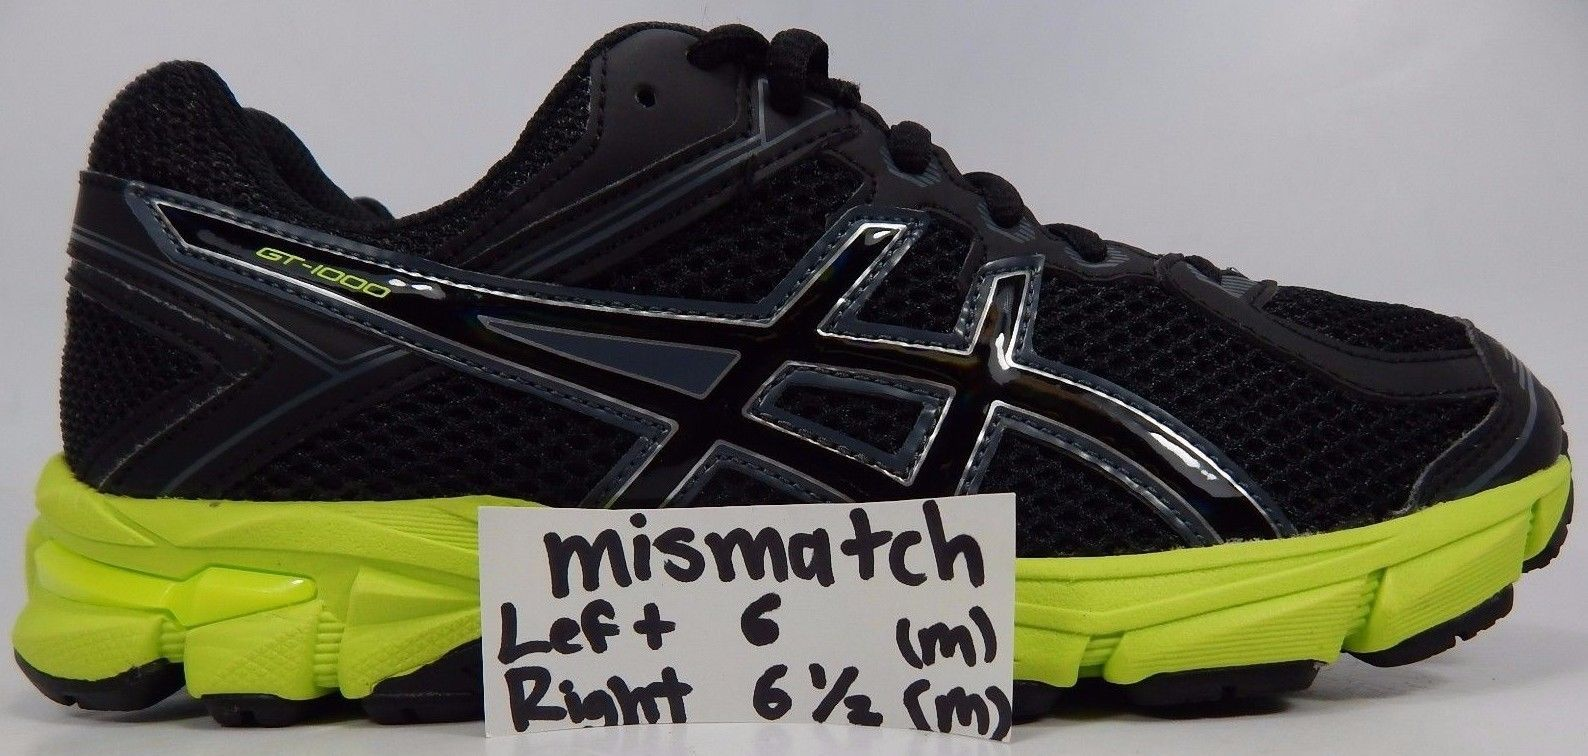 MISMATCH Asics GT 1000 Youth Girls Running Shoes Size US 6 Y LEFT 6.5 Y RIGHT